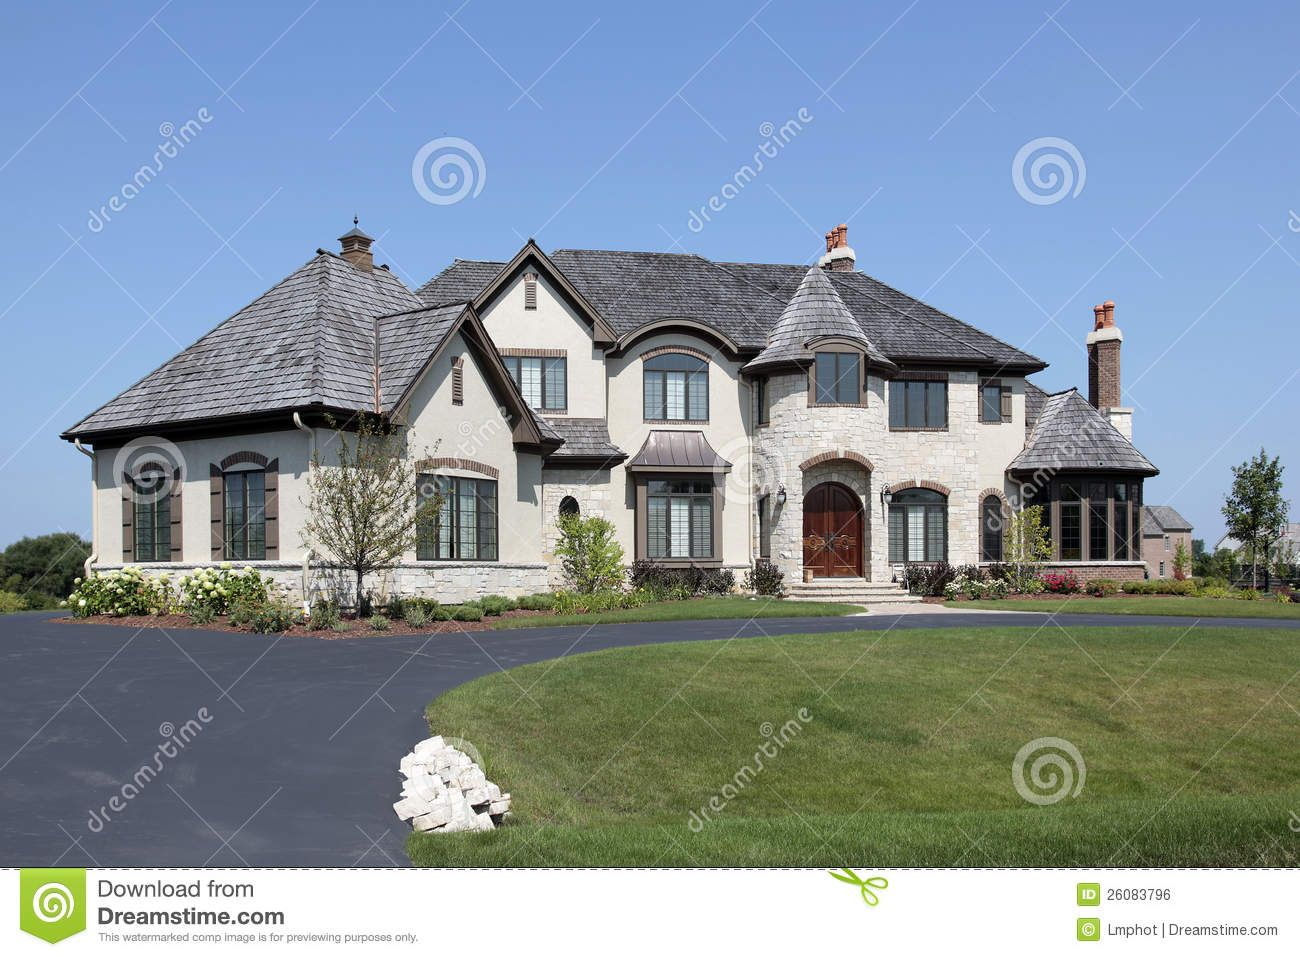 House Turret Design Suburban Home With Royalty